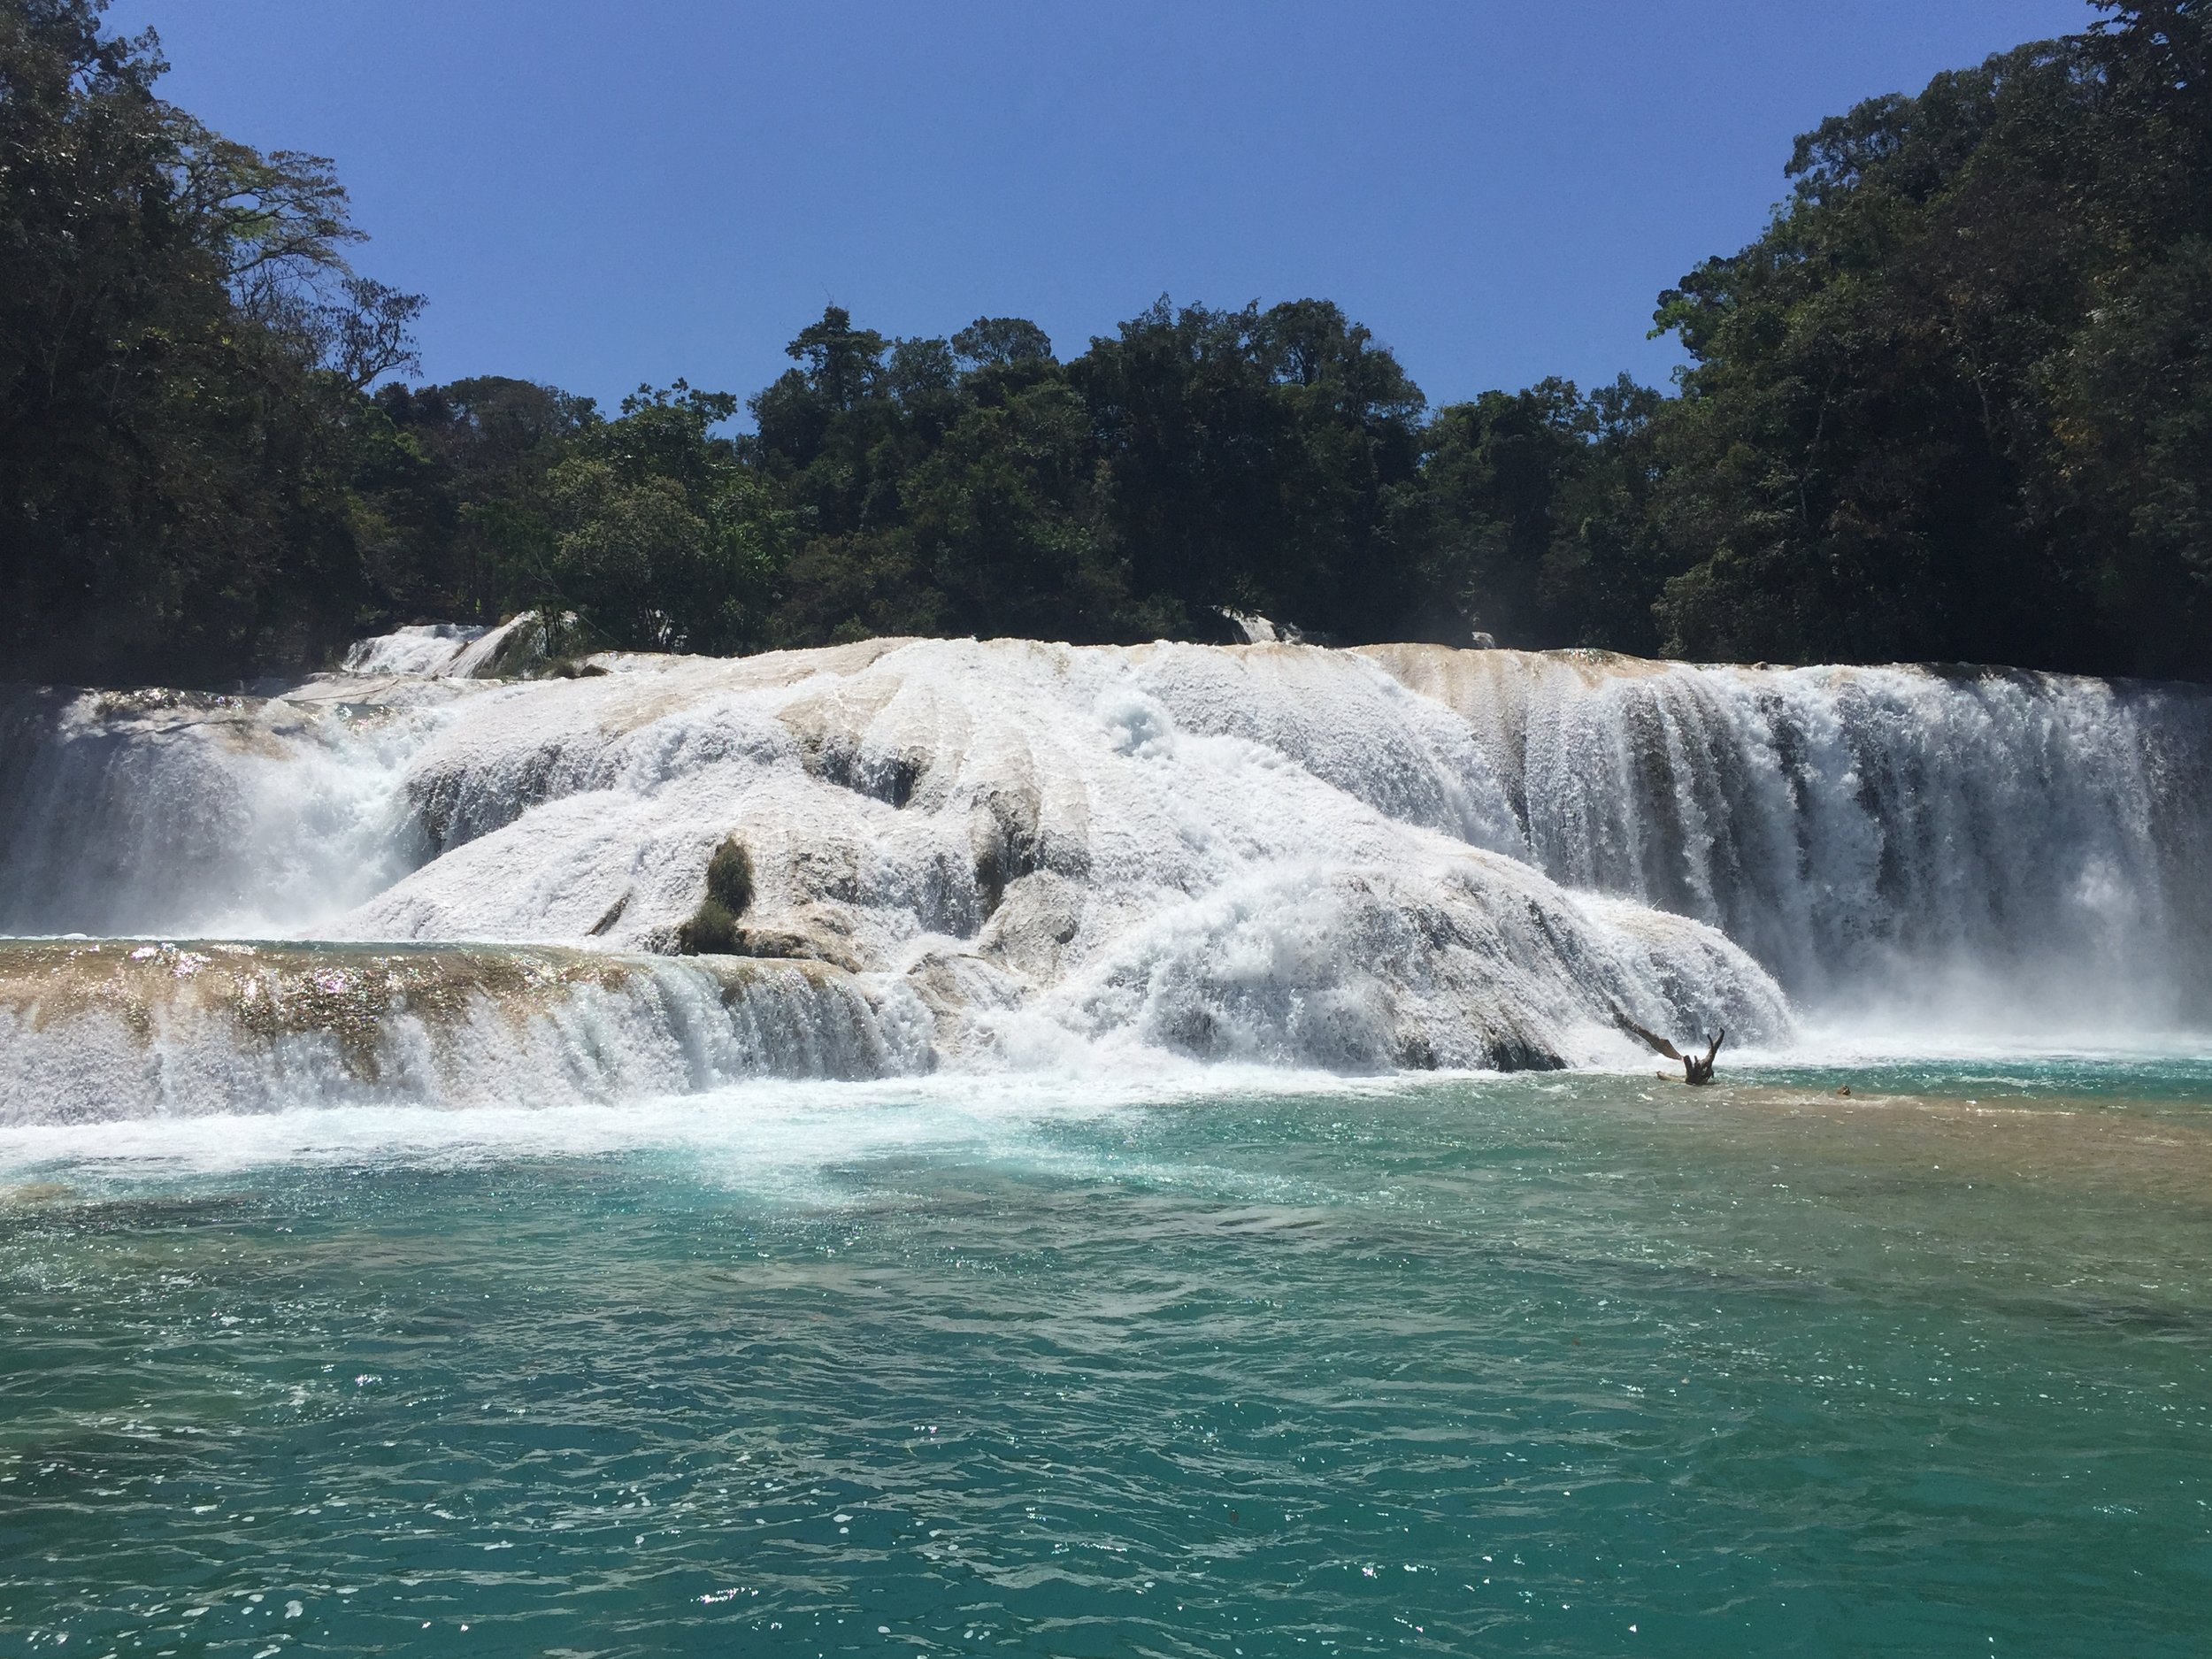 Cascadas de Agua Azul, beautiful aqua color caused by the high content of calcium carbonate and other minerals in the water encasing everything in its path with a thick shell-like coating of limestone.